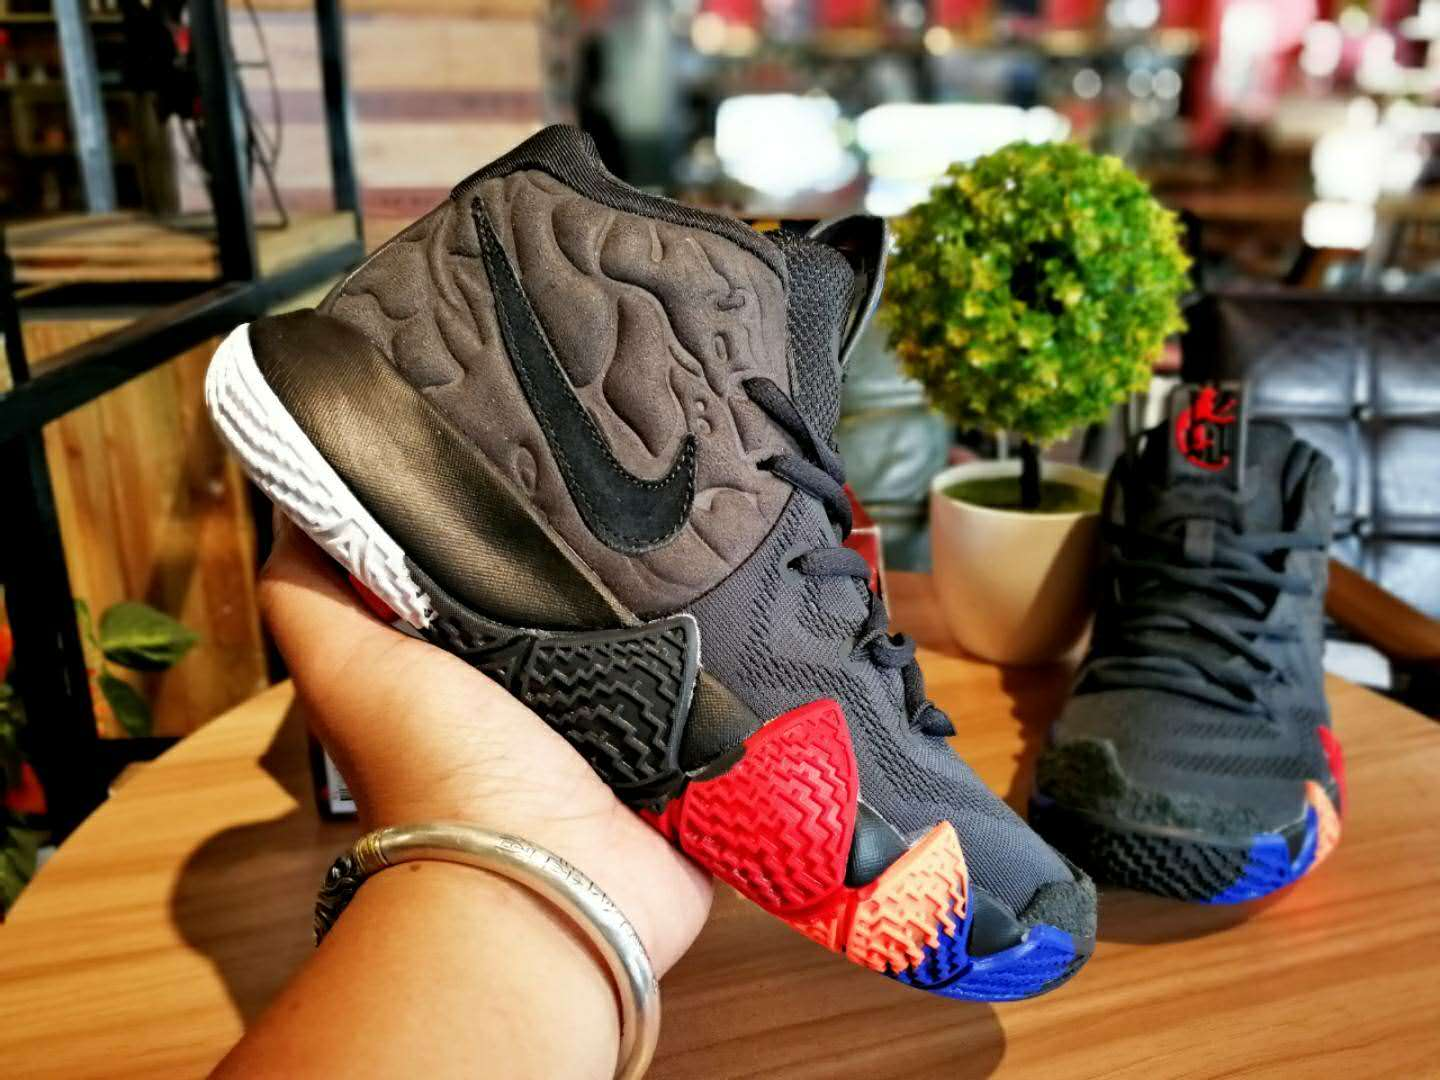 Nike Kyrie 4 Year of the Monkey Black Grey Brown Shoes